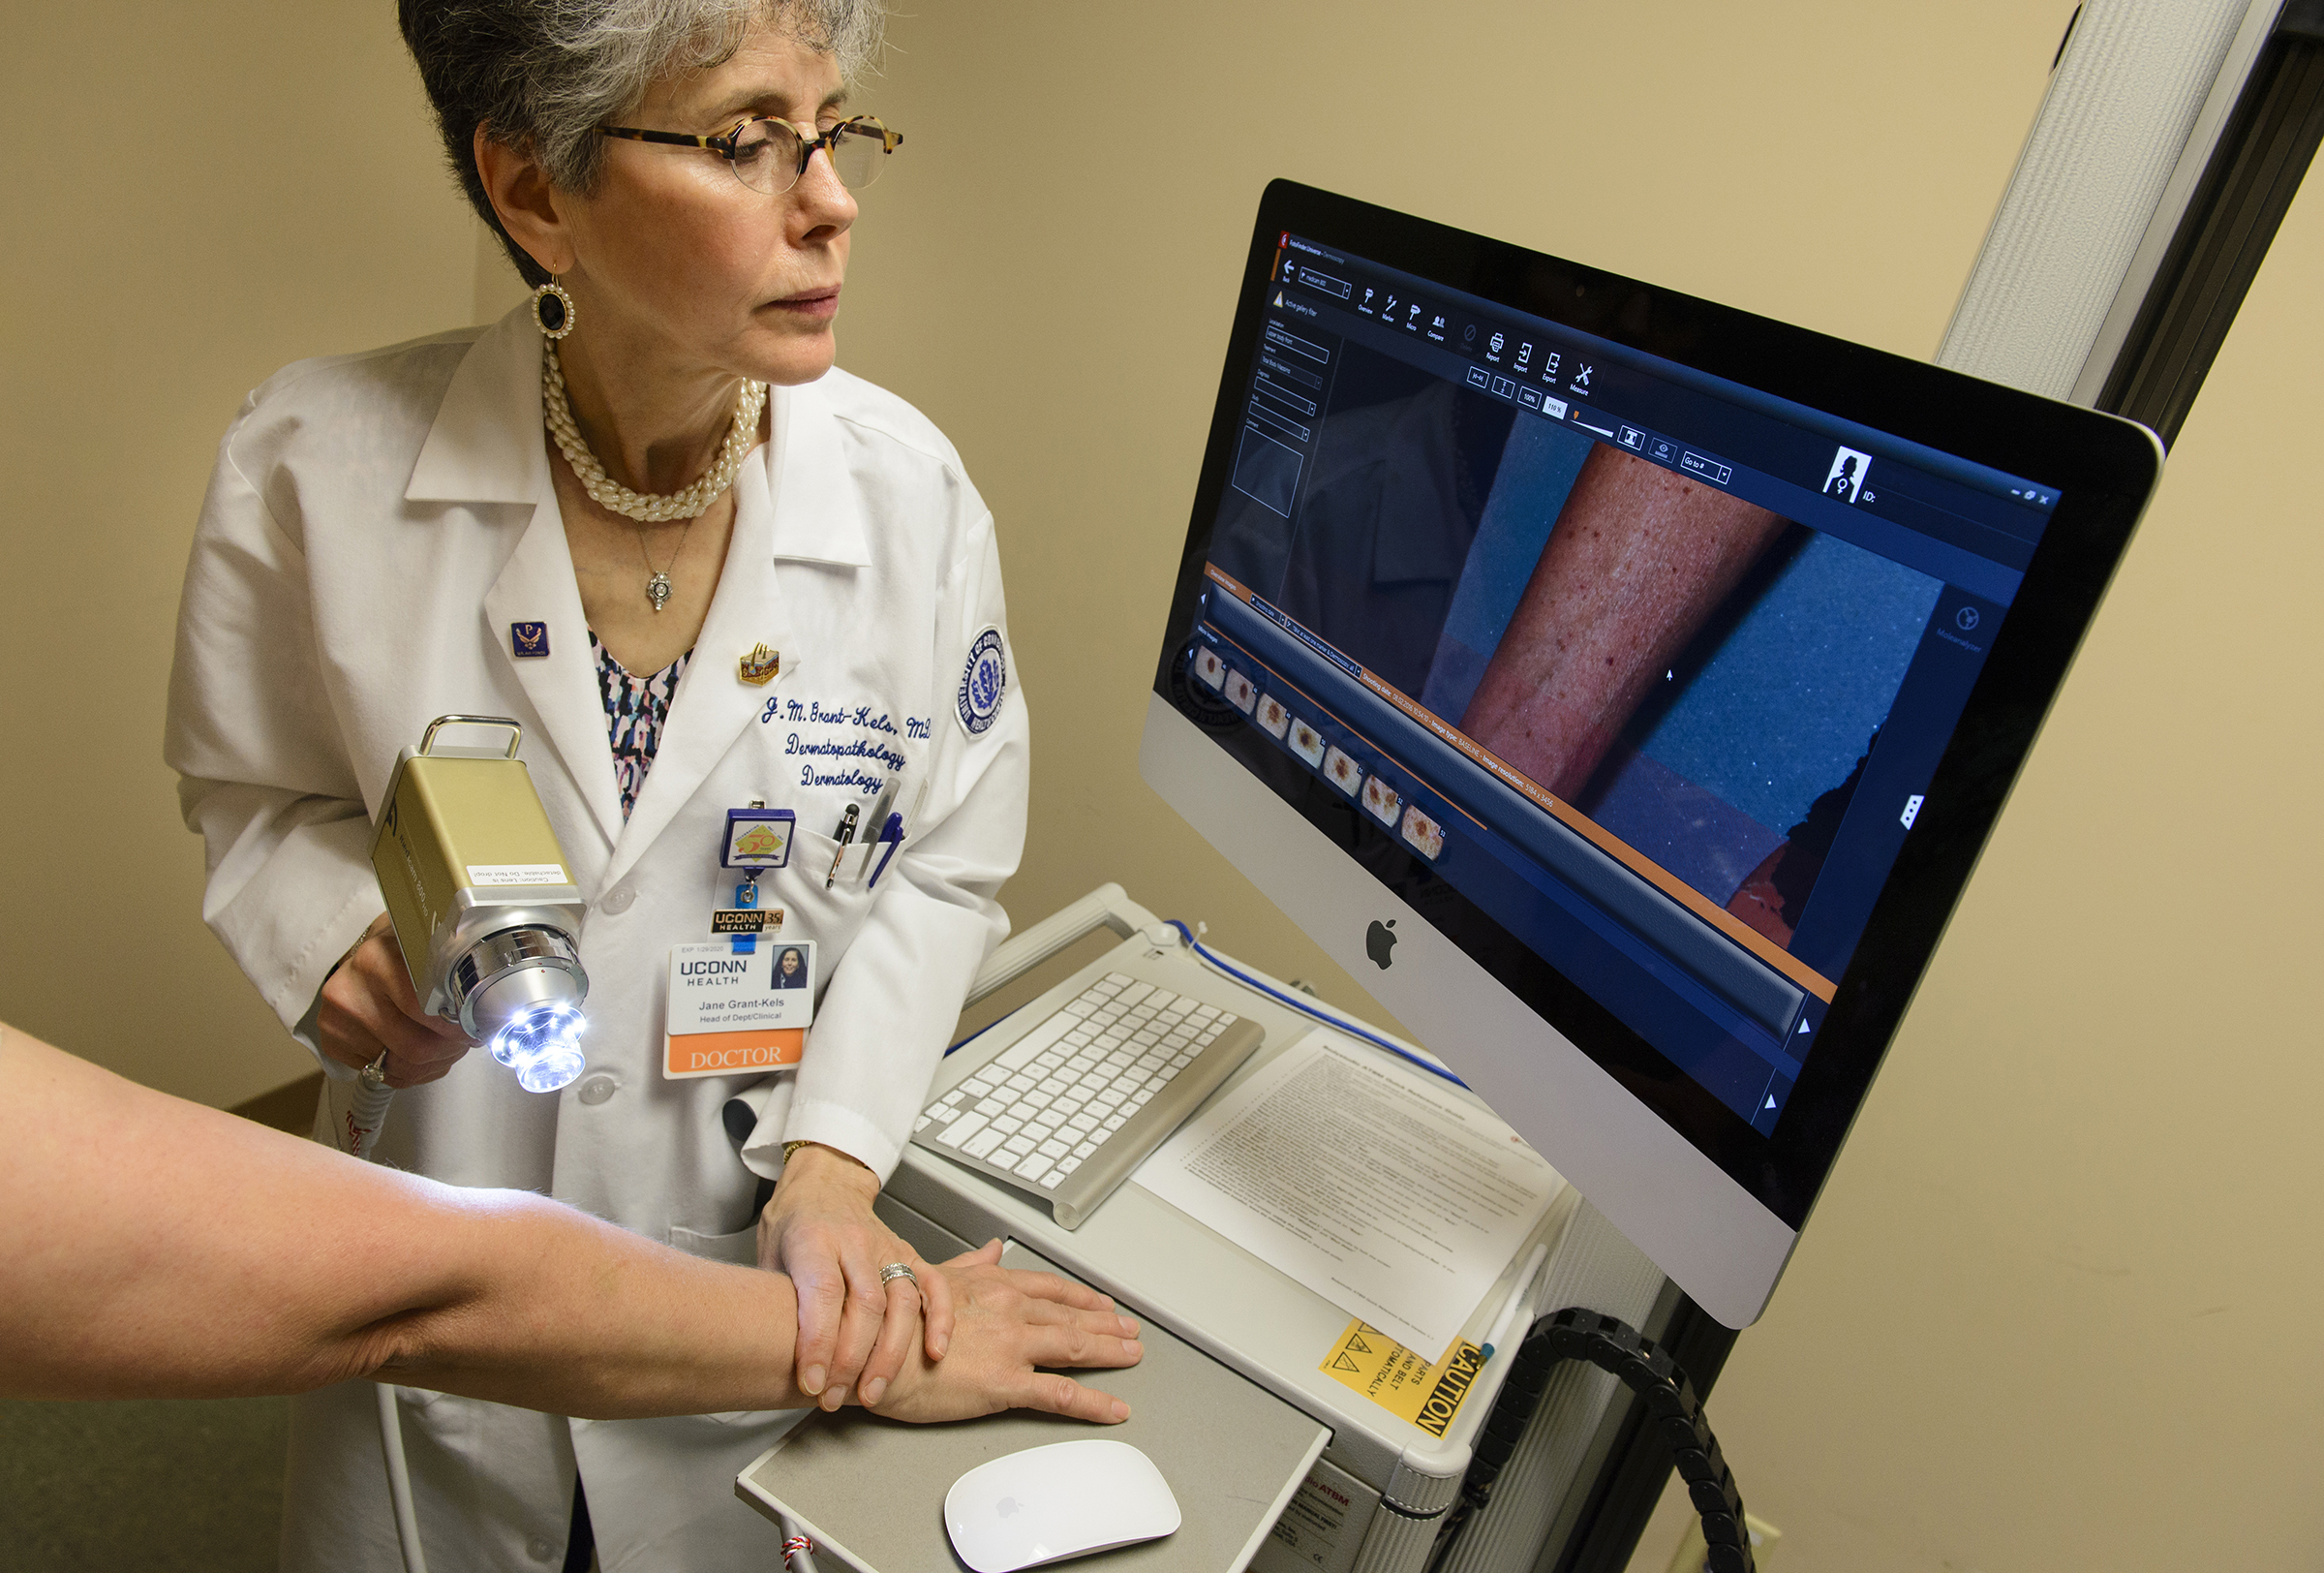 The Power Of Light Limits Skin Cancer Biopsies Uconn Today